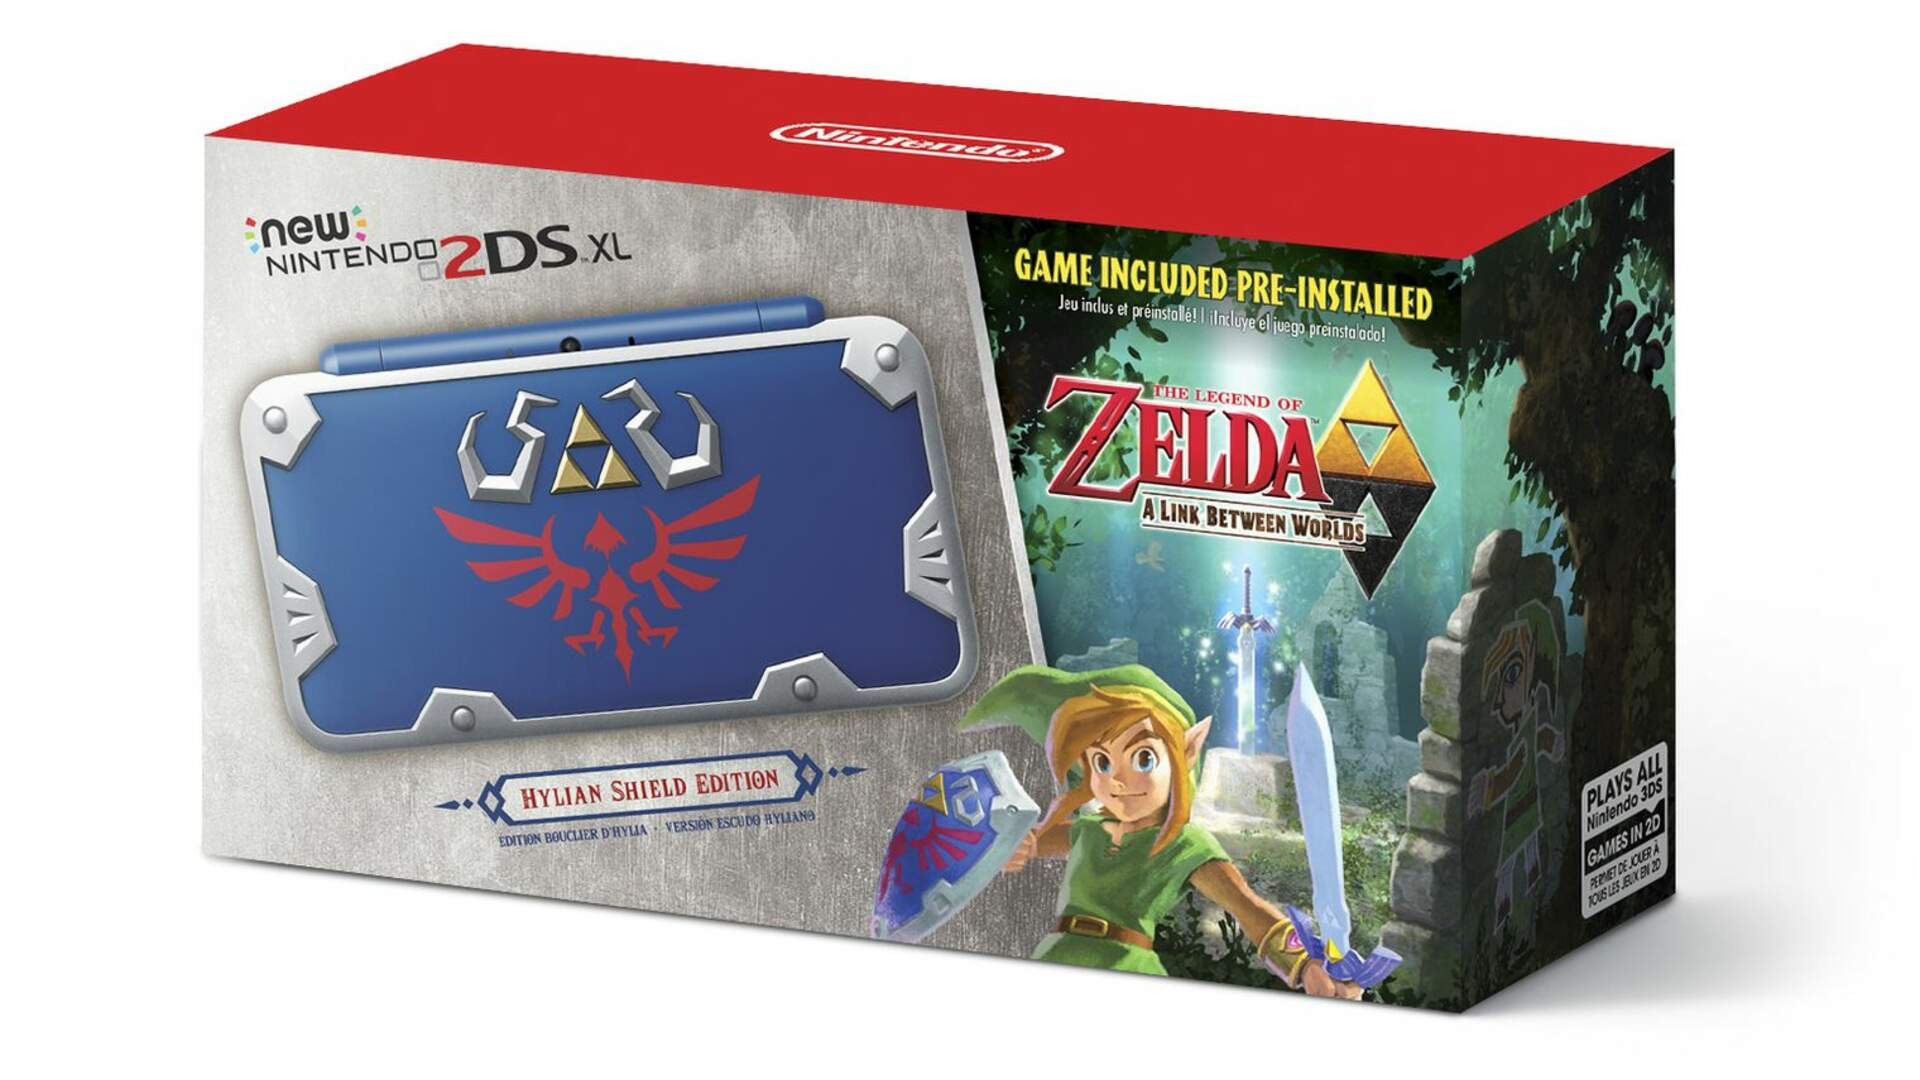 Nintendo is Releasing a Limited Edition 2DS With a Zelda Game Packed In